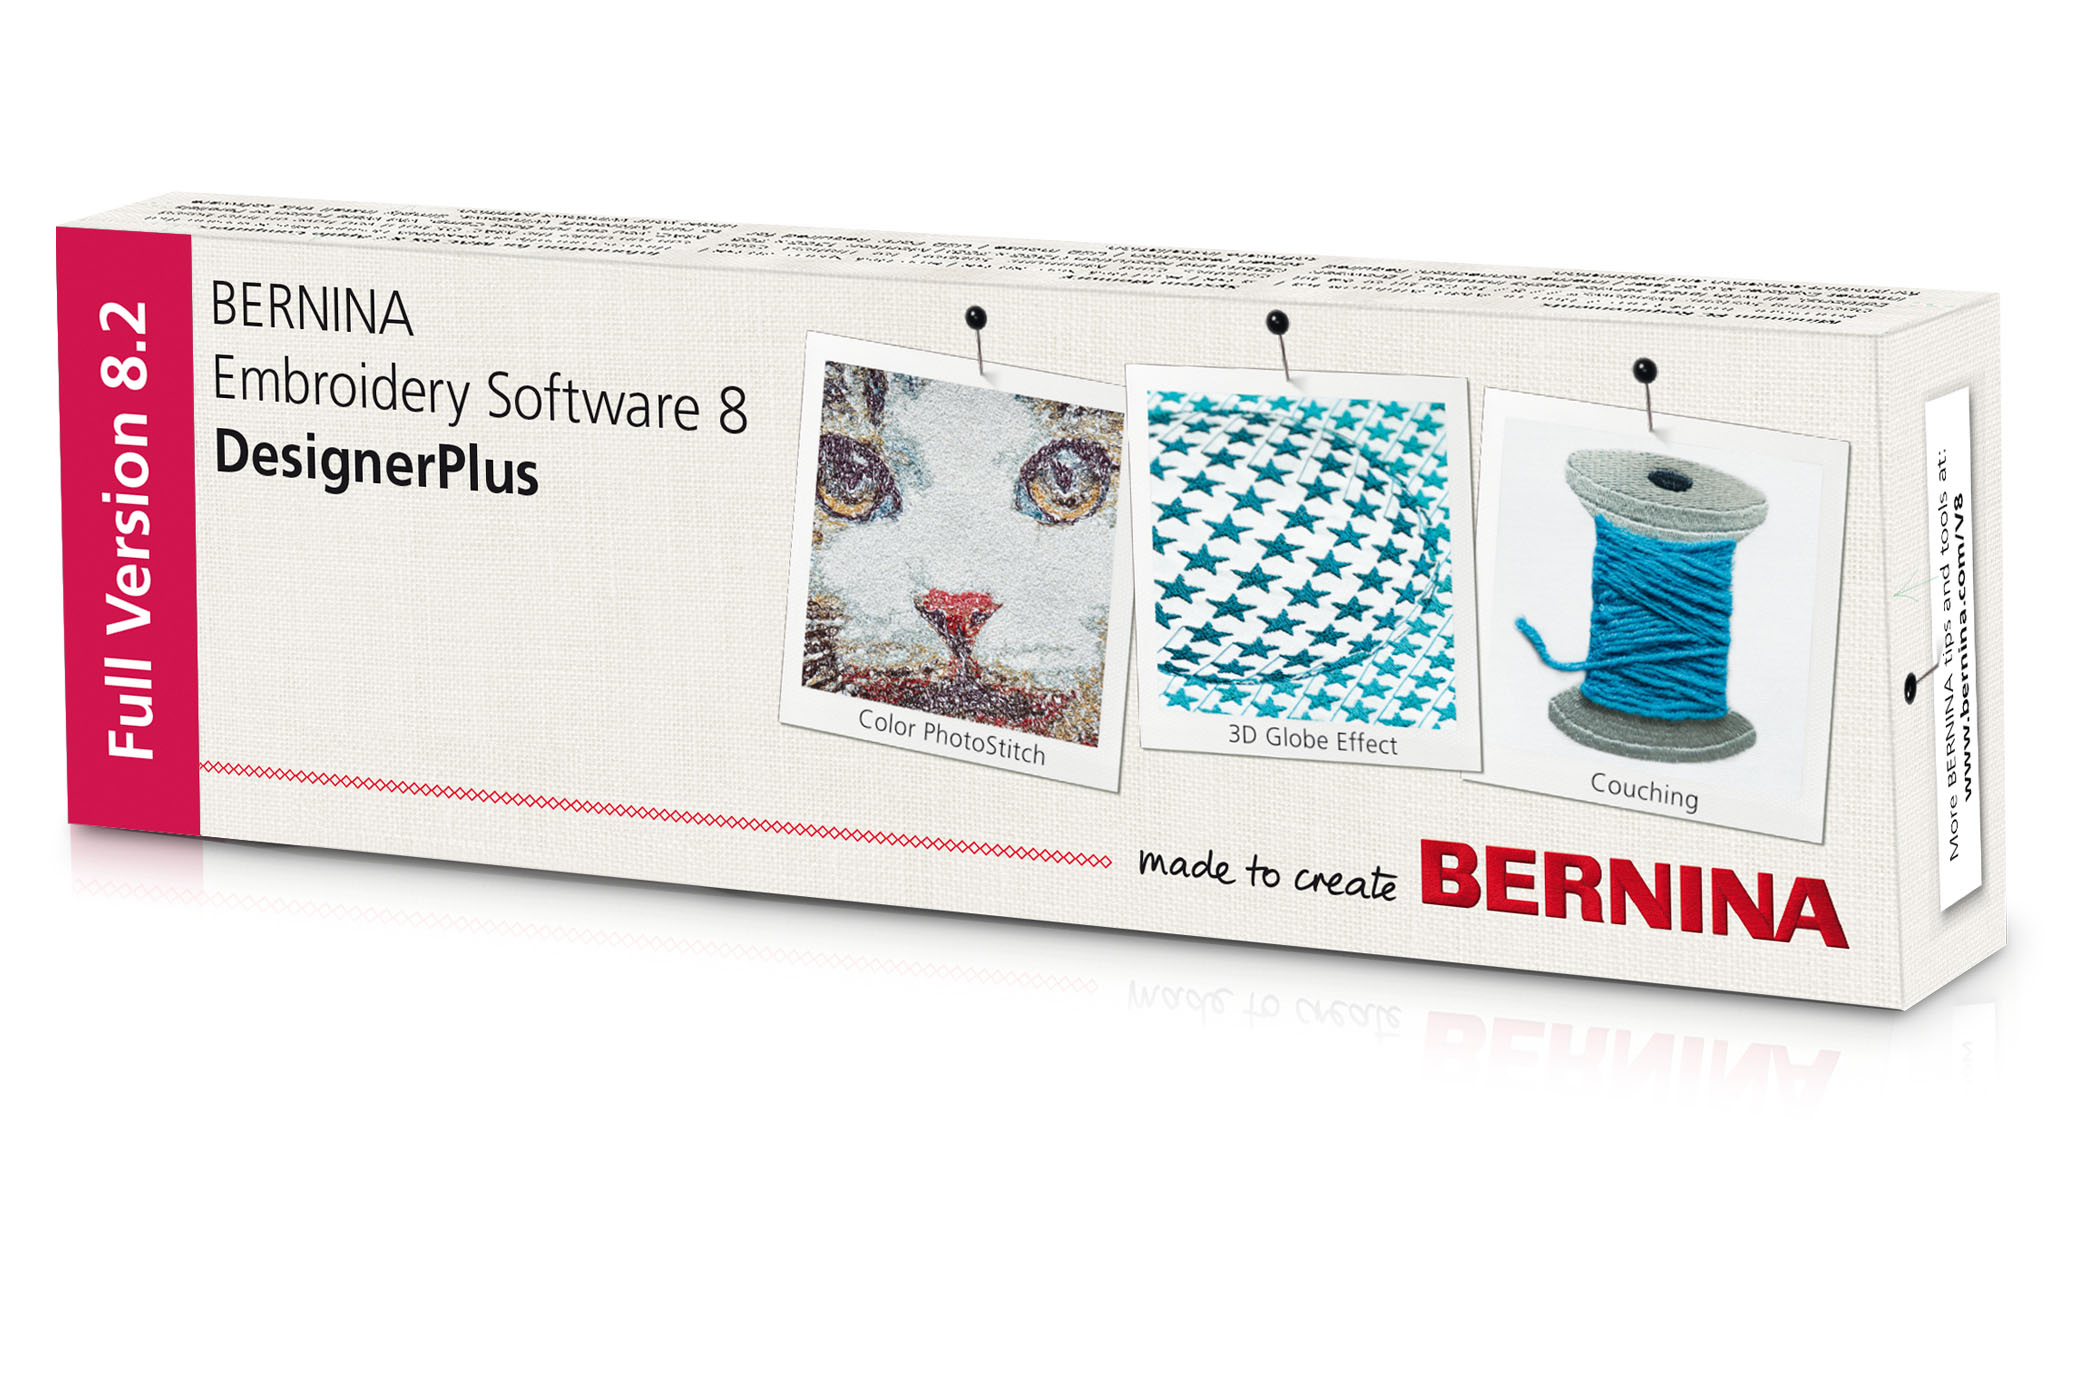 BERNINA borduursoftware 8 – DesignerPlus